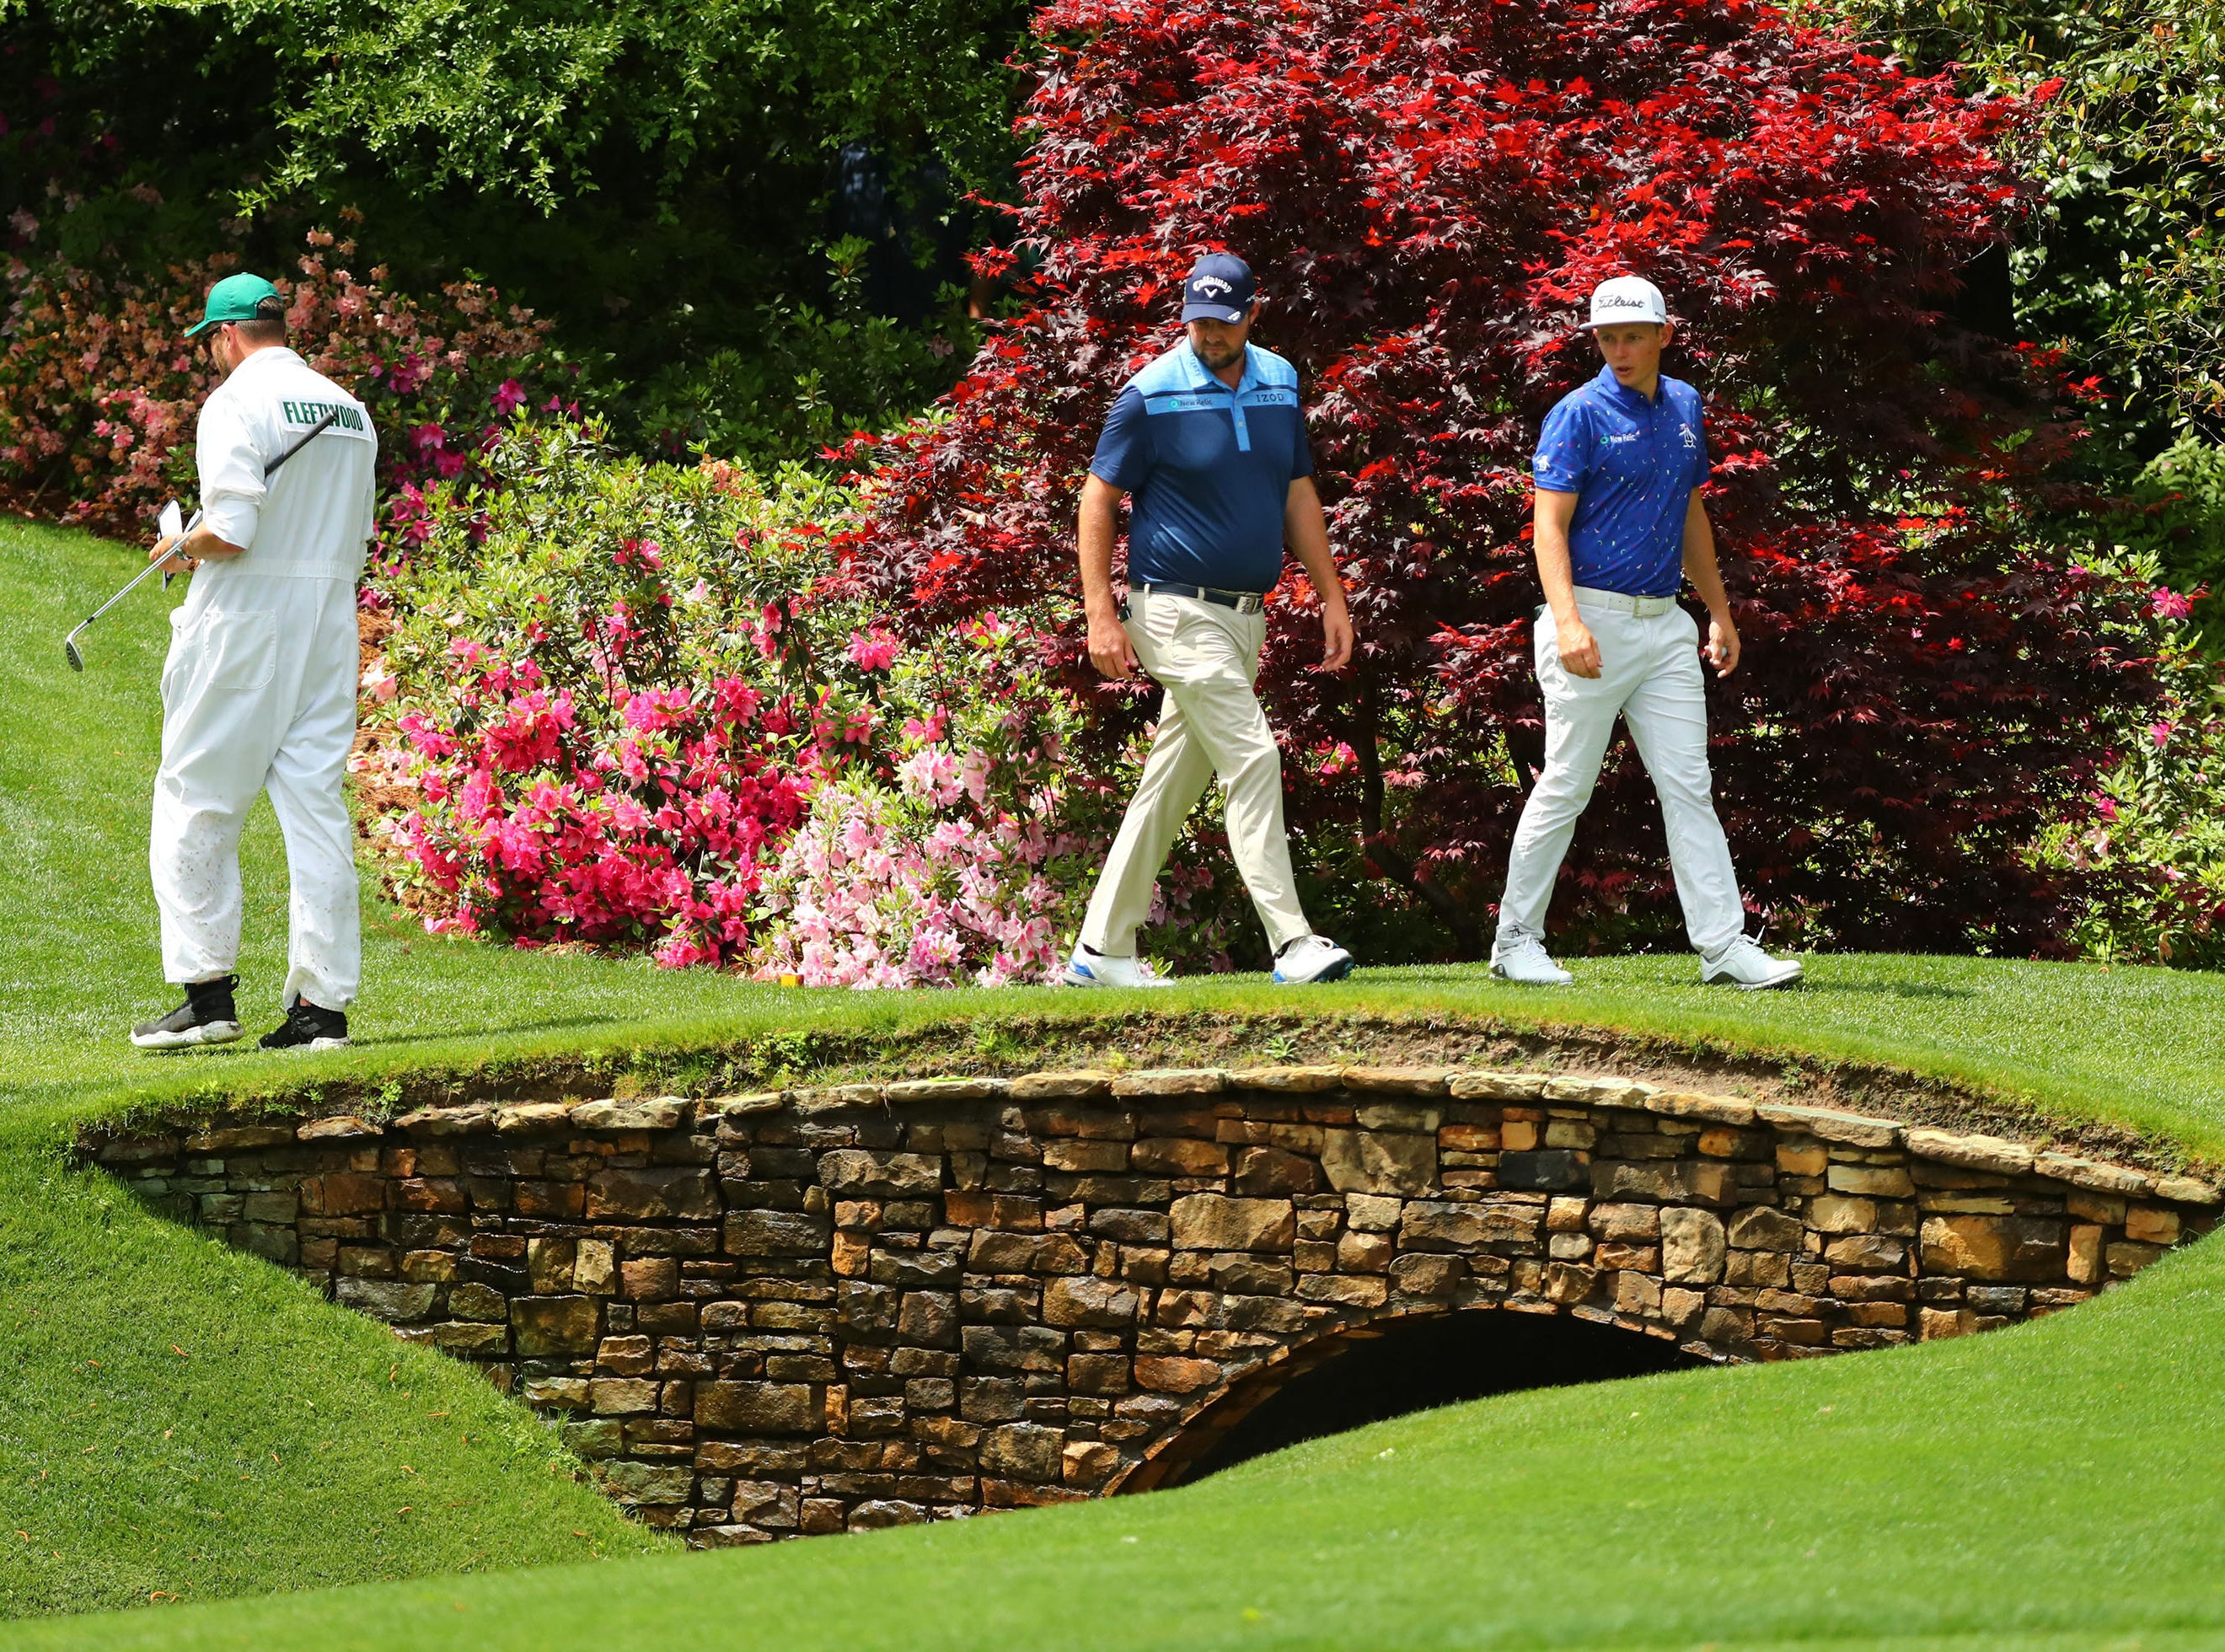 Apr 9, 2019; Augusta, GA, USA; Marc Leishman of Australia and Cameron Smith of Australia (right) look down into Rae's Creek on the 13th hole during a practice round for The Masters golf tournament at Augusta National Golf Club. Mandatory Credit: Rob Schumacher-USA TODAY Sports